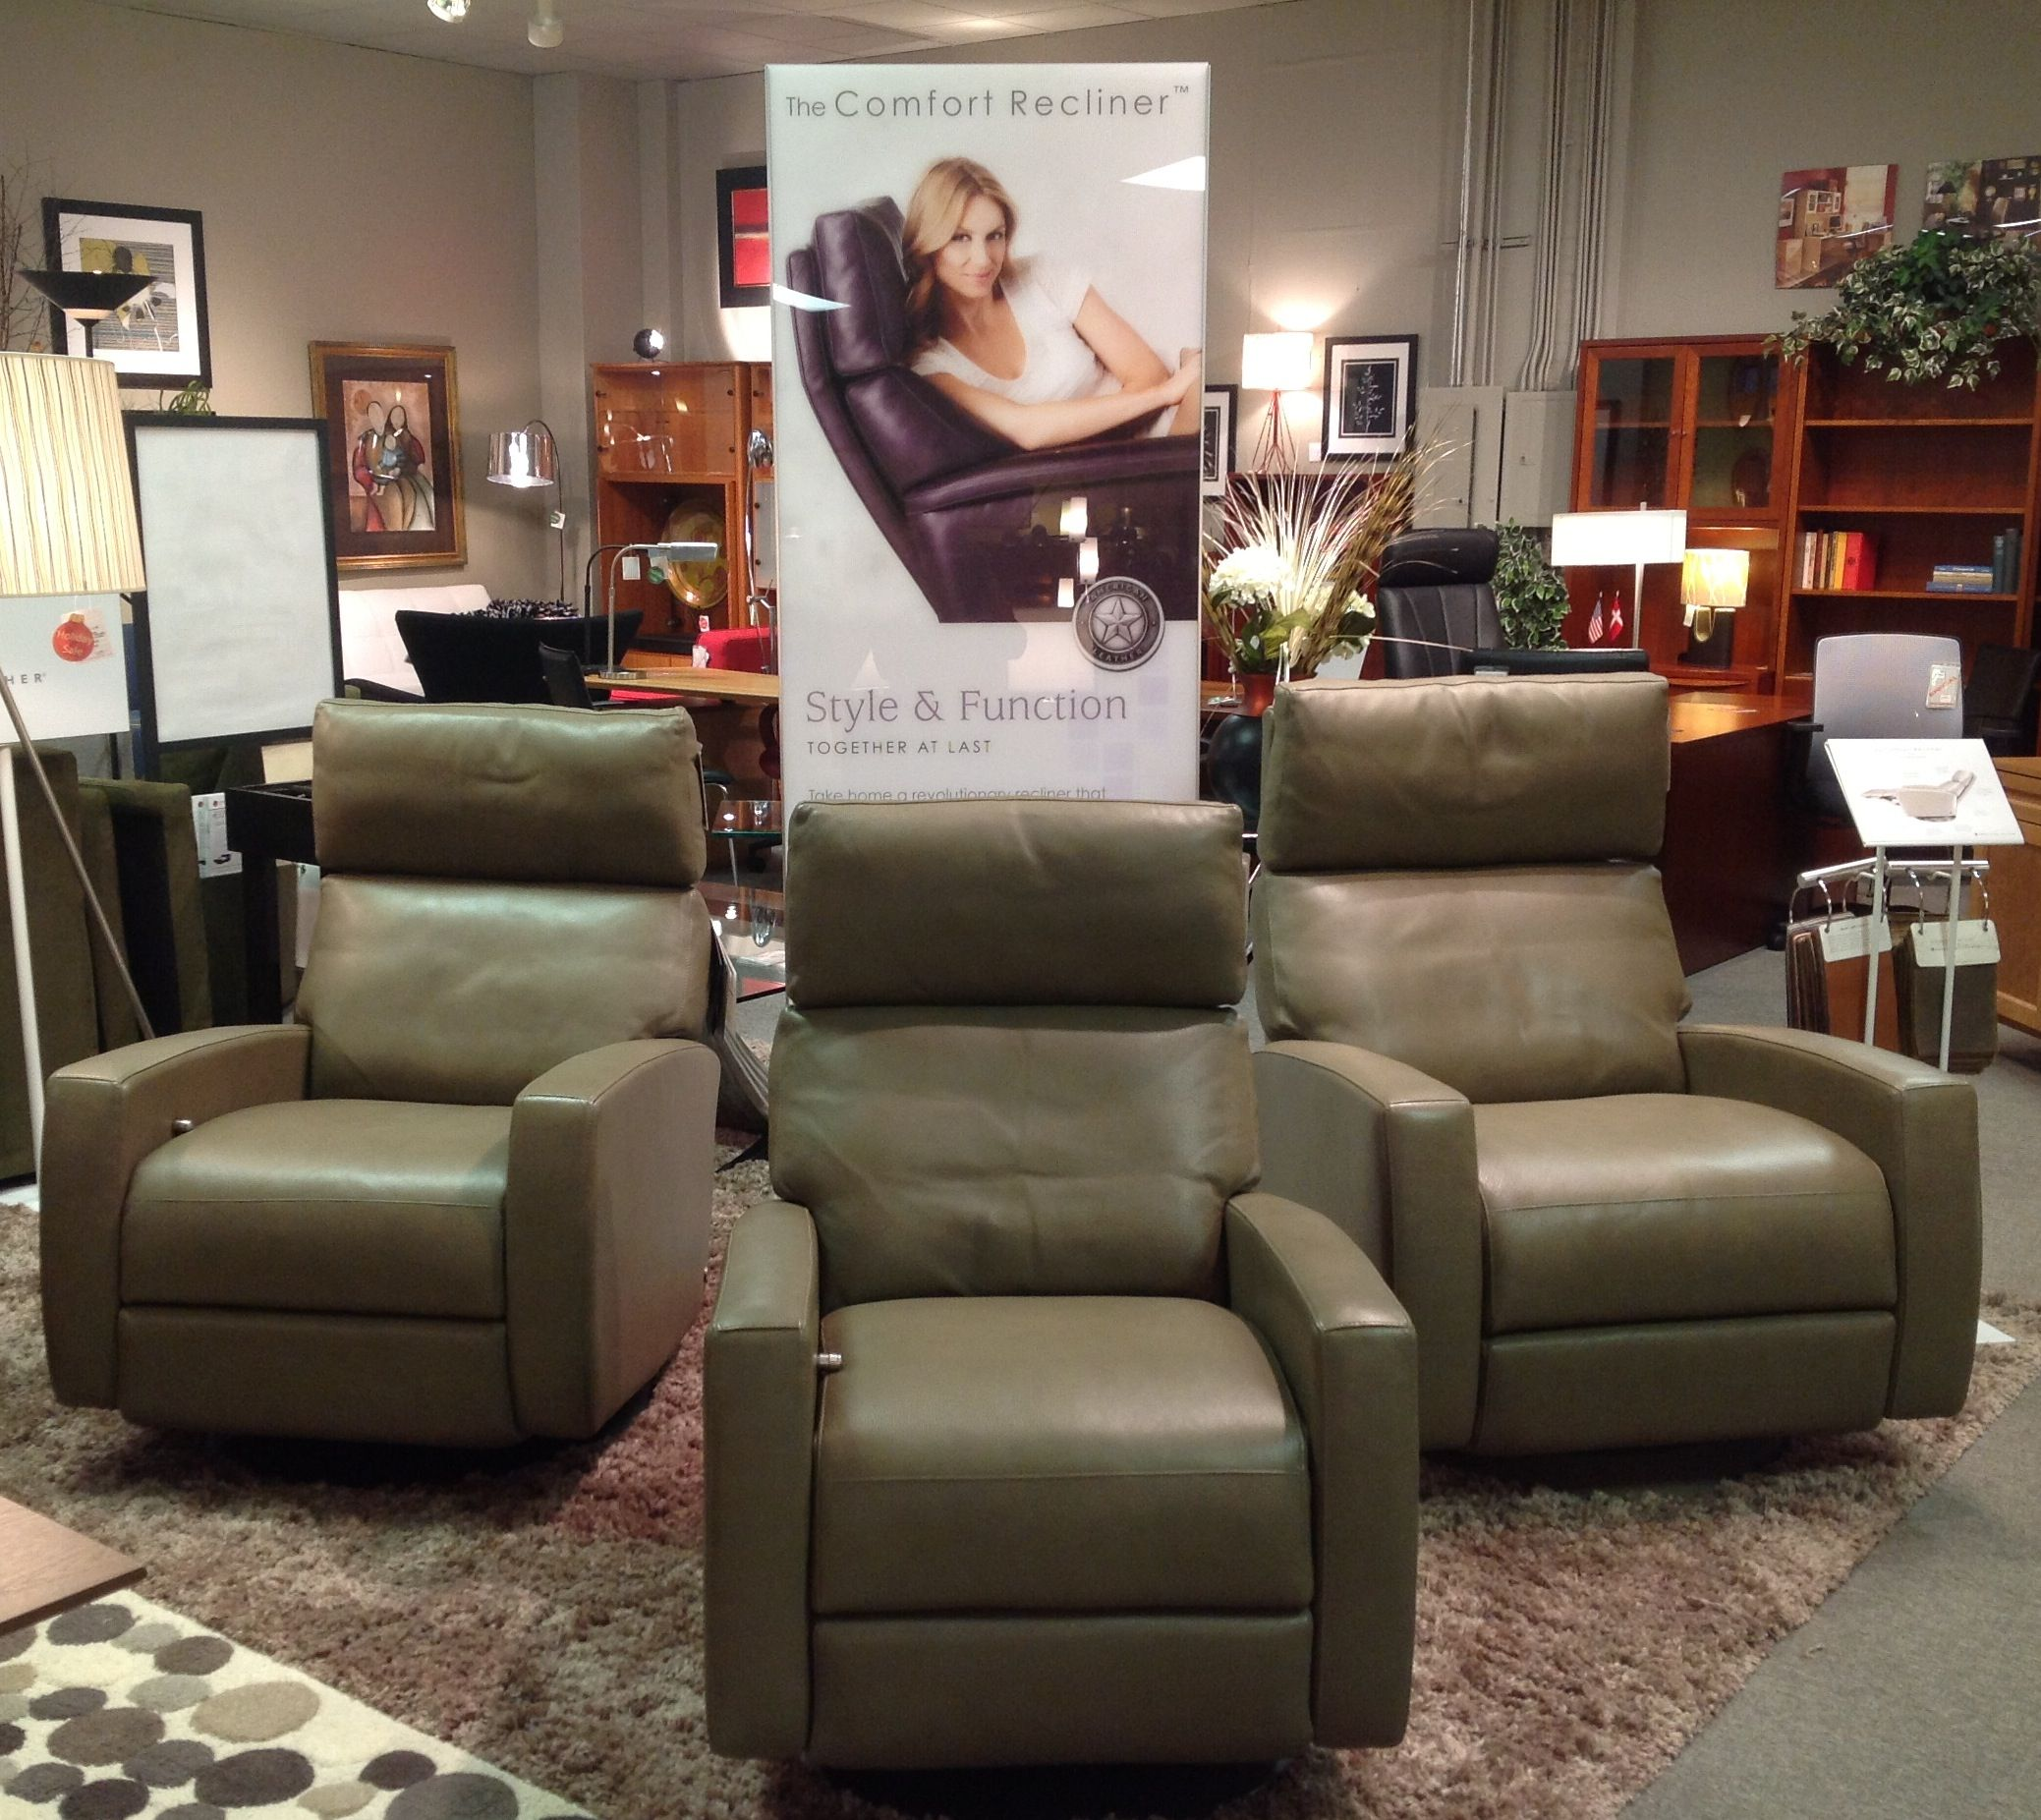 fort Recliners from American Leather Available at Scanhome